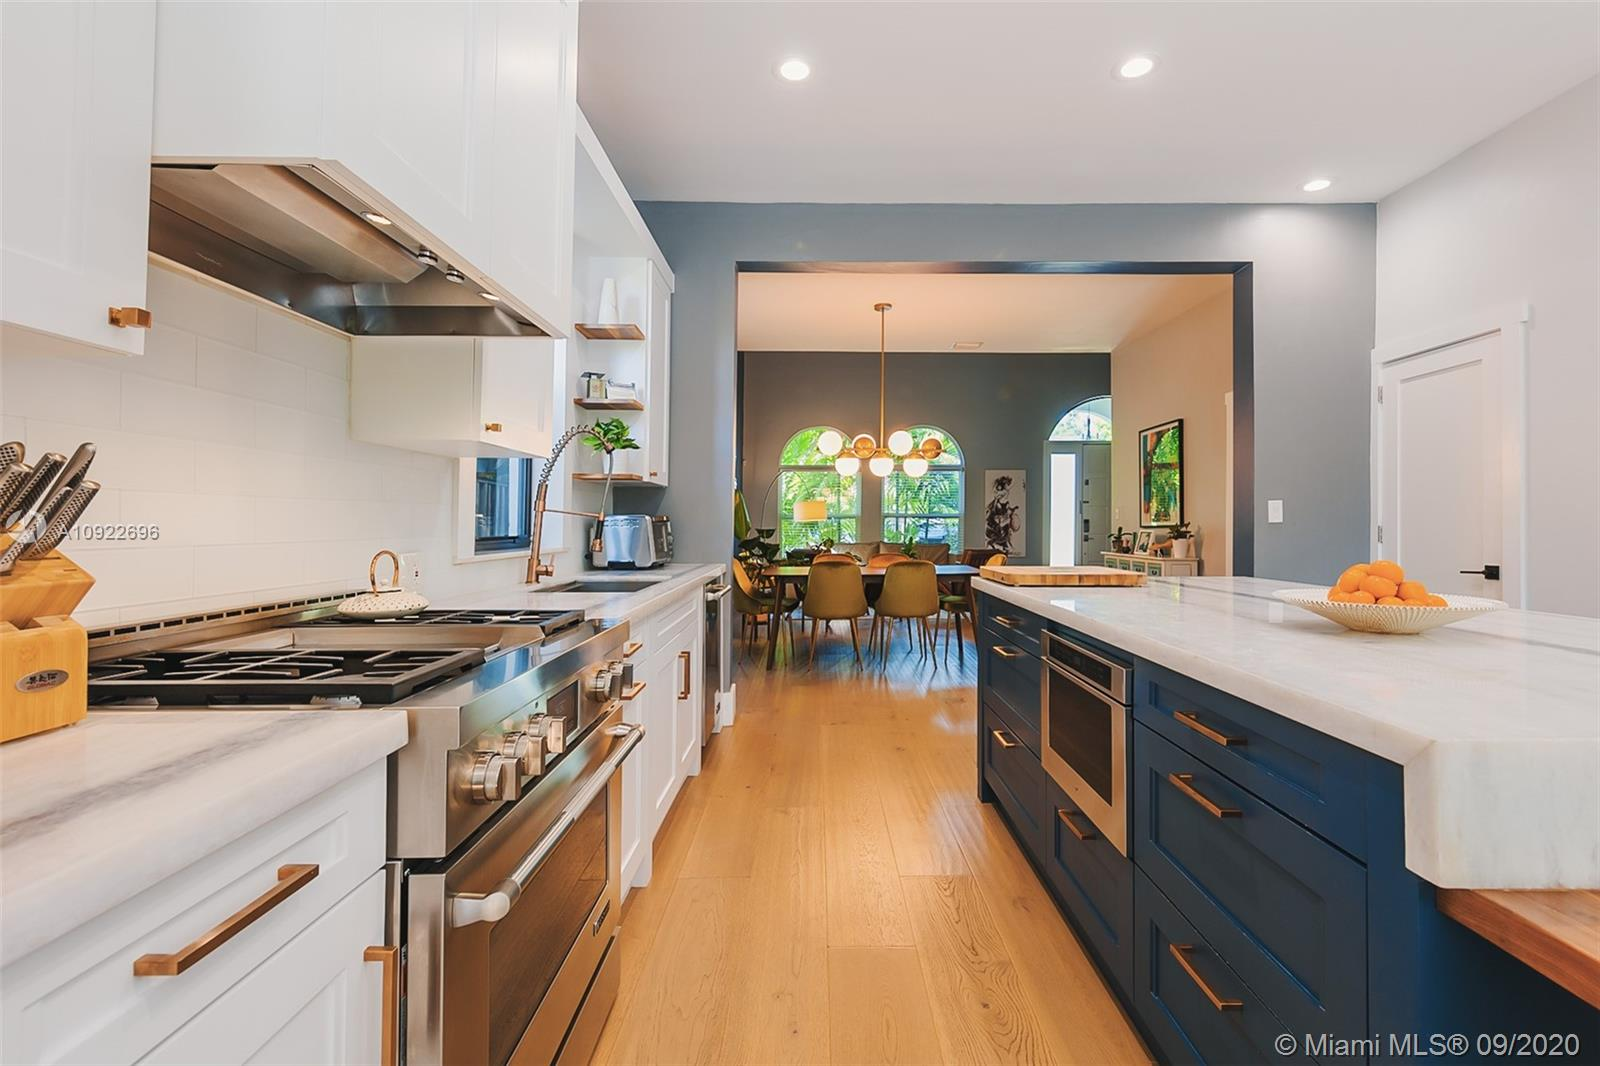 This 2 story tropical paradise in the heart of Coconut Grove can be yours! 4 Bedroom, 2 ½ bath pool home. The main floor features eat-in remodeled custom wood Chef's kitchen with gas stove, Jenn-Air appliances, quartzite counter tops, integrated refrigerator, built-in natural walnut dining table, coffee bar area with wine fridge. Italian White Oak wood floors throughout first floor and bedroom. Large laundry room with storage. The outdoor entertainment space encompasses a  covered terrace, travertine pool deck, jacuzzi, Argentinian style BBQ charcoal/wood grill and luscious landscaping. Security cameras throughout property. 2 Electric vehicle charging stations. Walking distance to parks, bay, shops and restaurants.